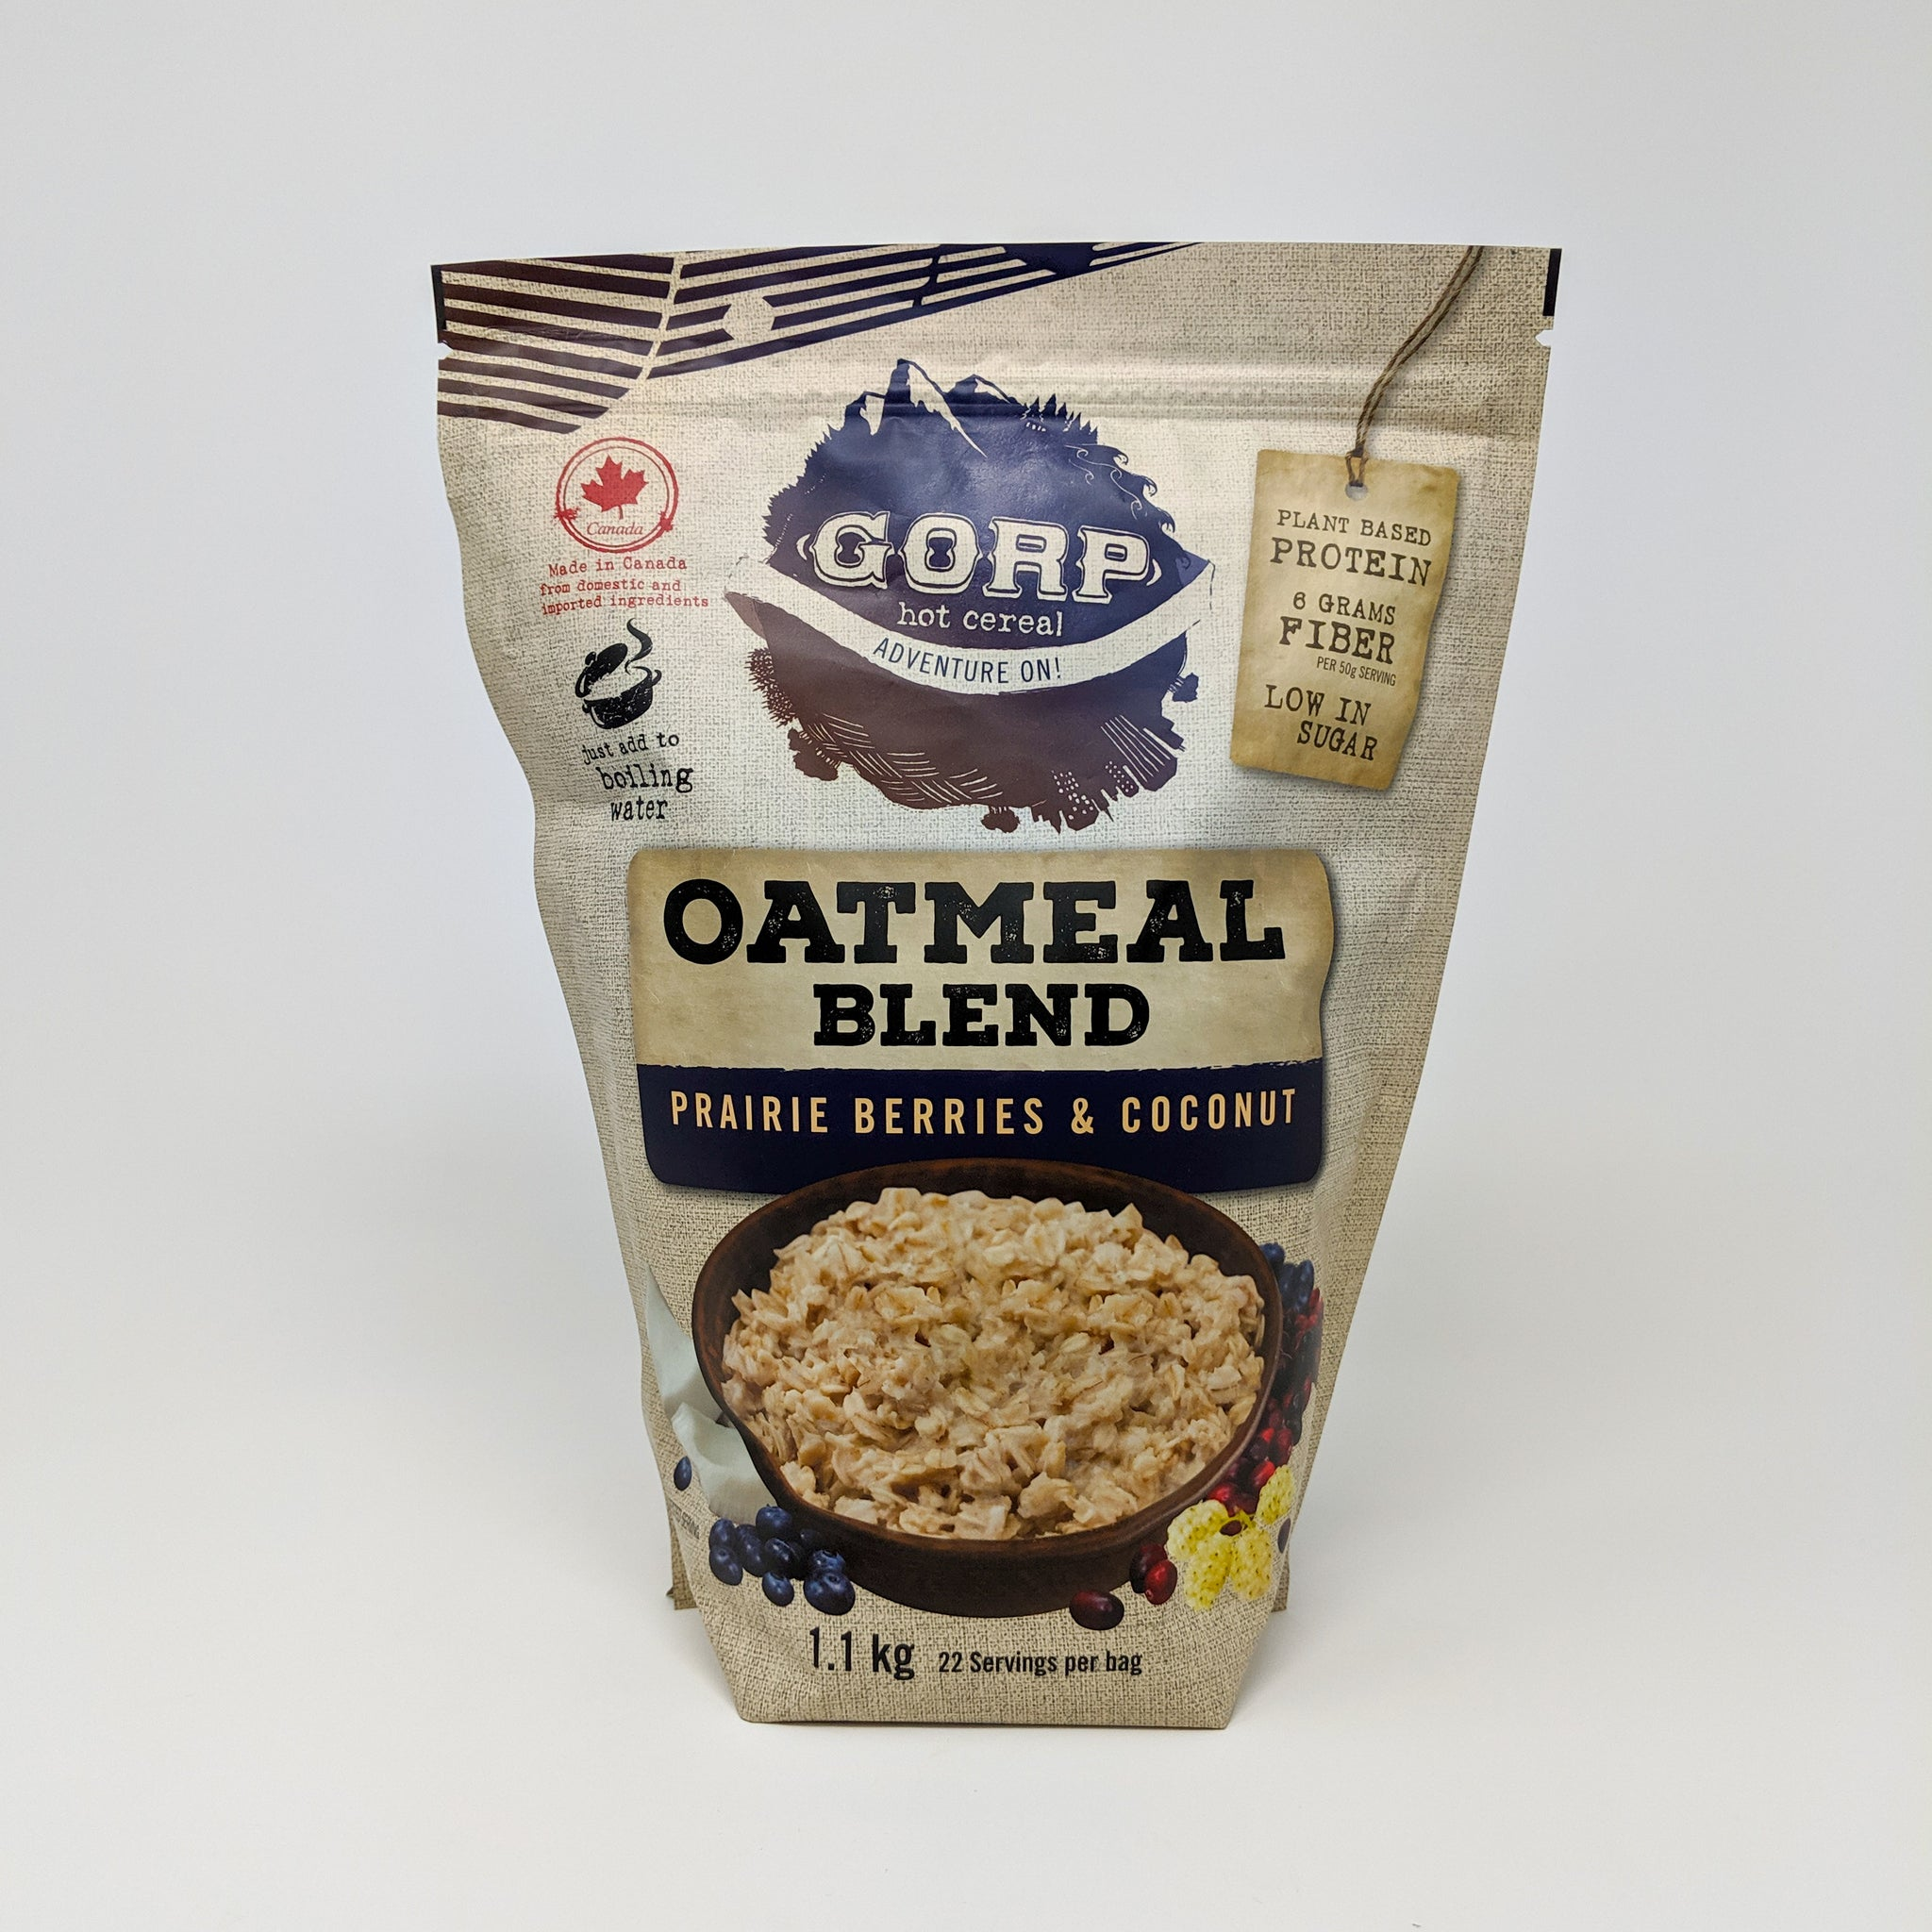 Oatmeal Blend - Prairie Berries and Coconut - GORP